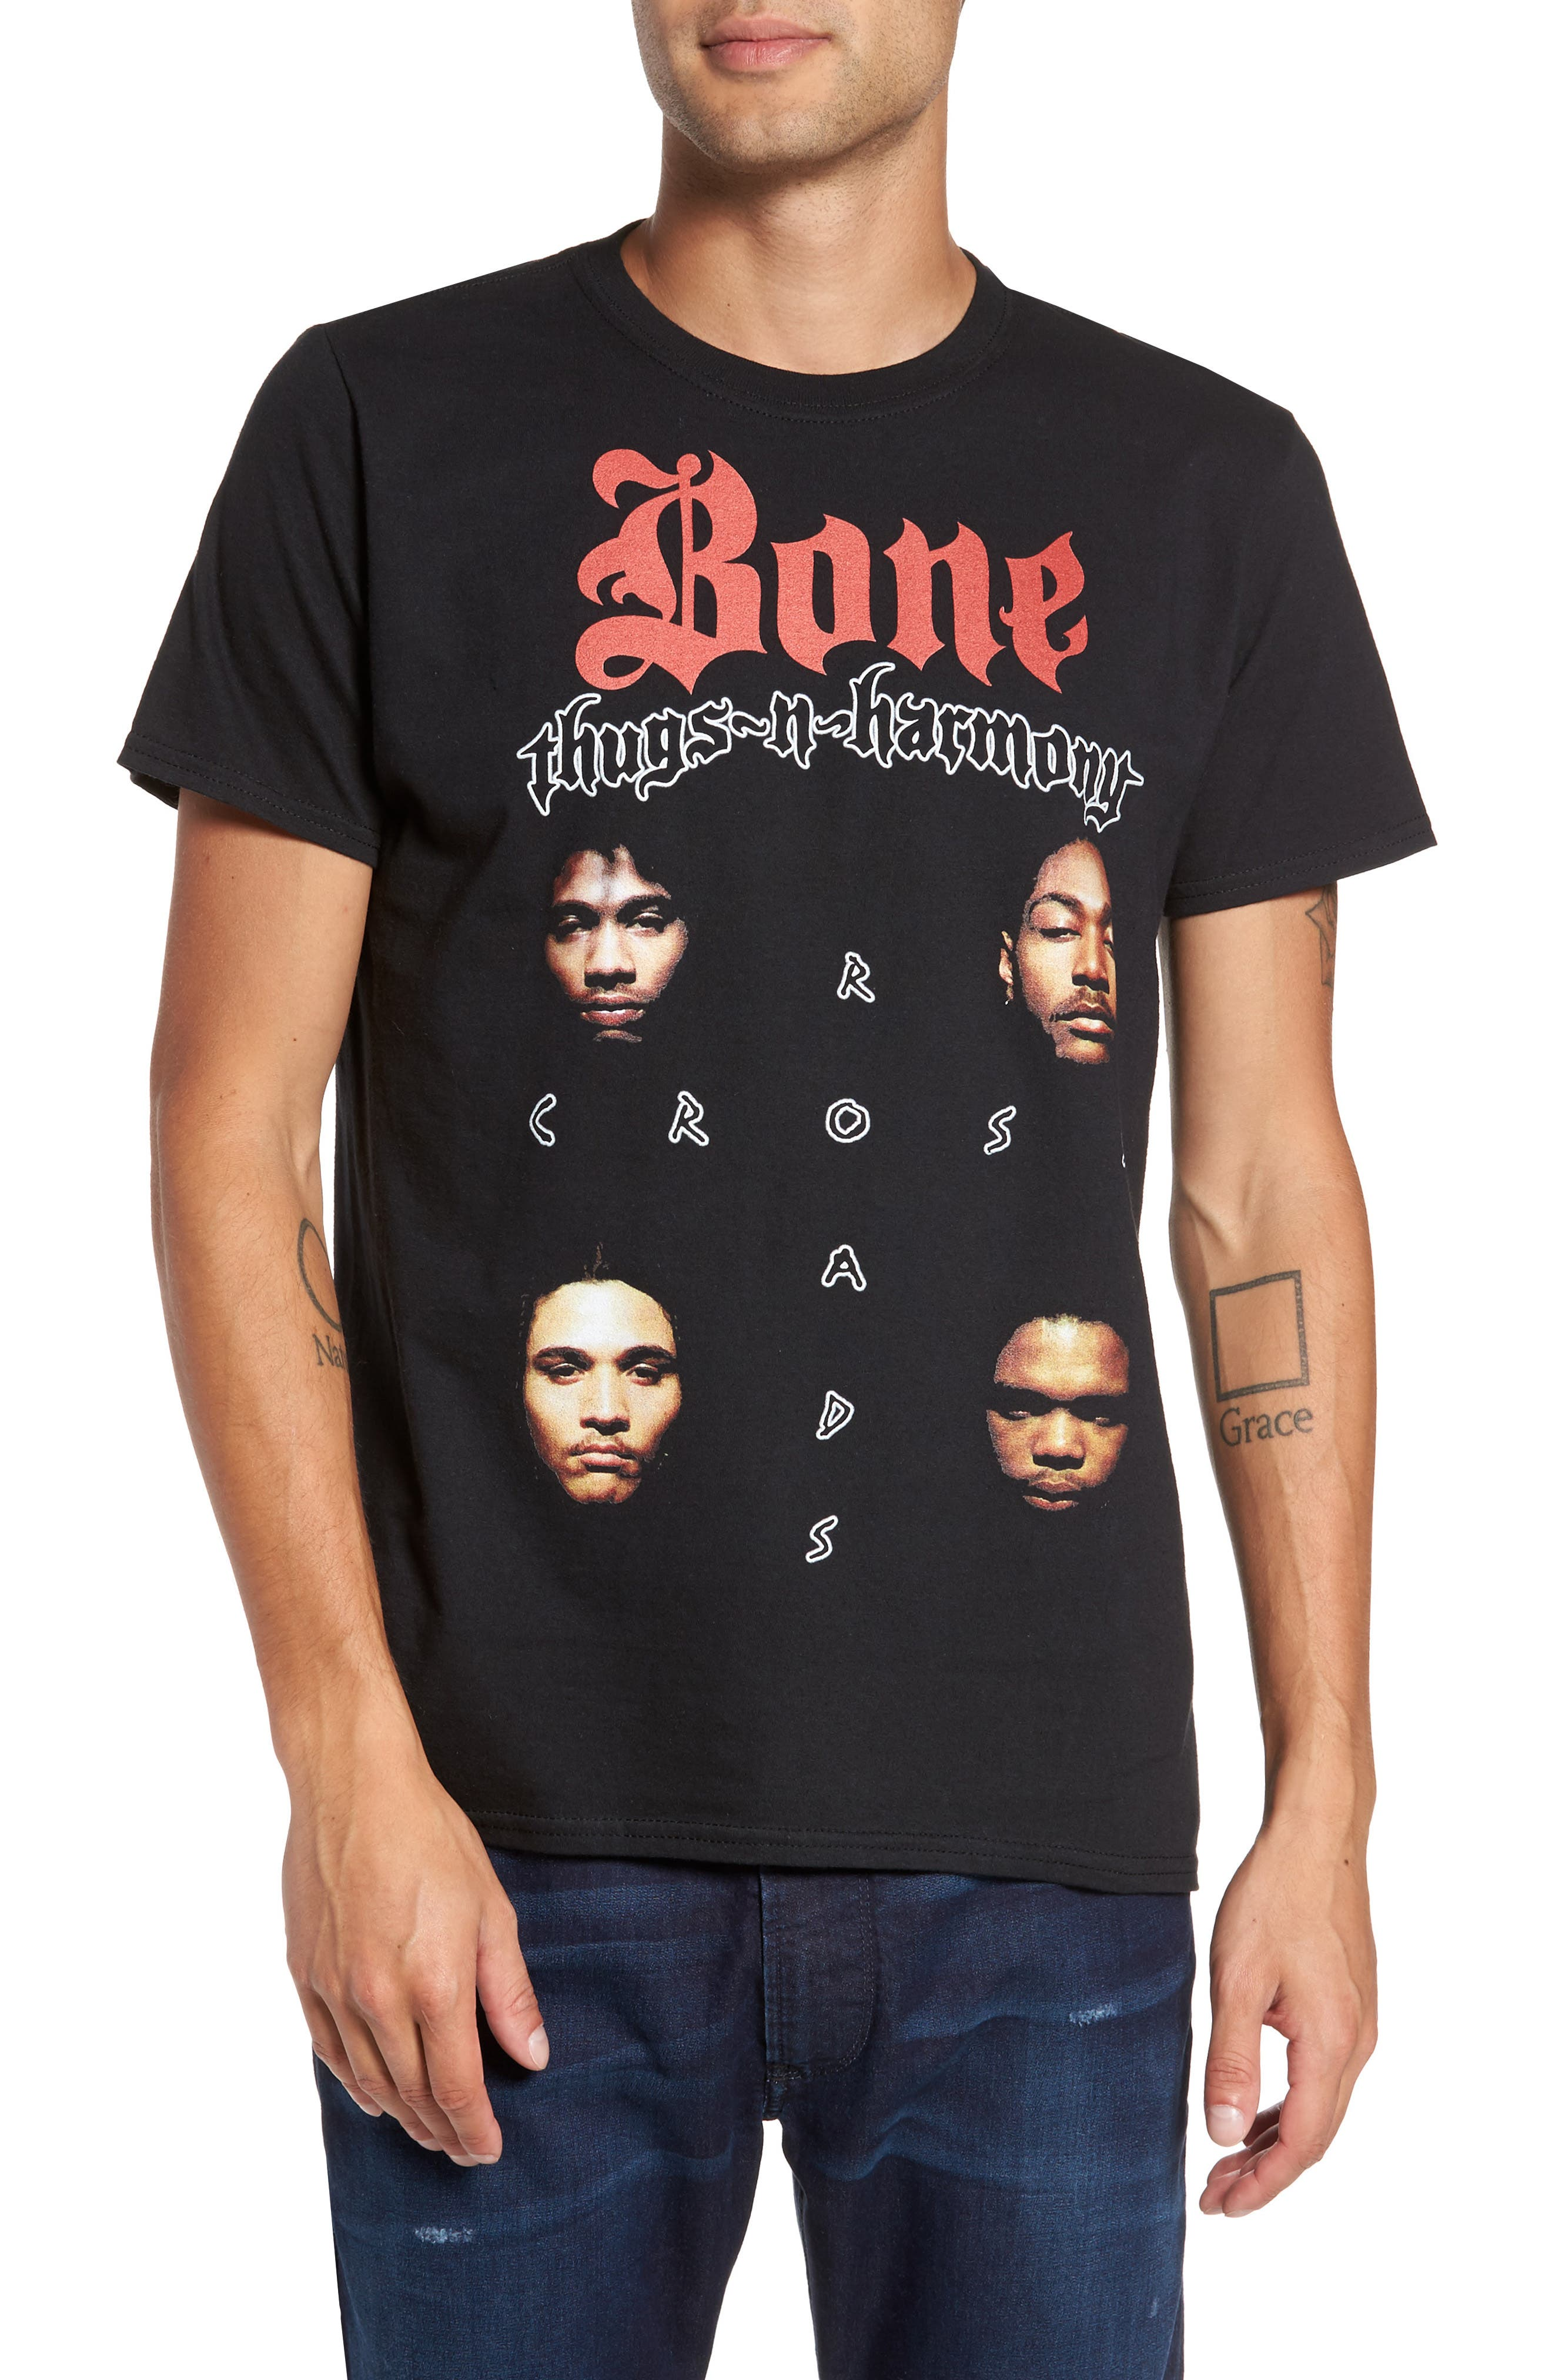 The Rail Bone Thugs-n-Harmony T-Shirt